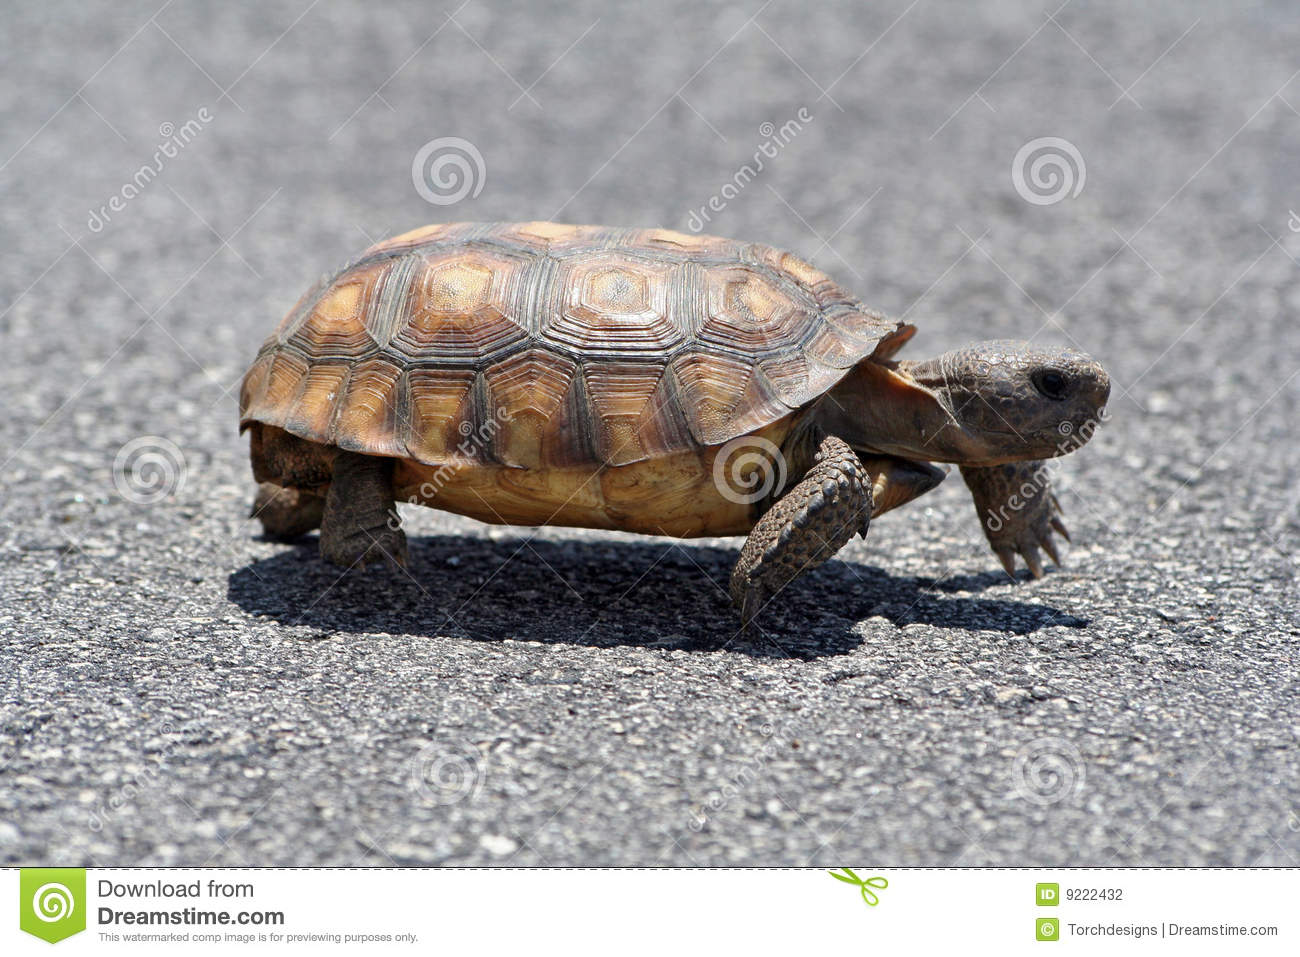 Gopher Tortoise Stock Photos, Images, & Pictures.